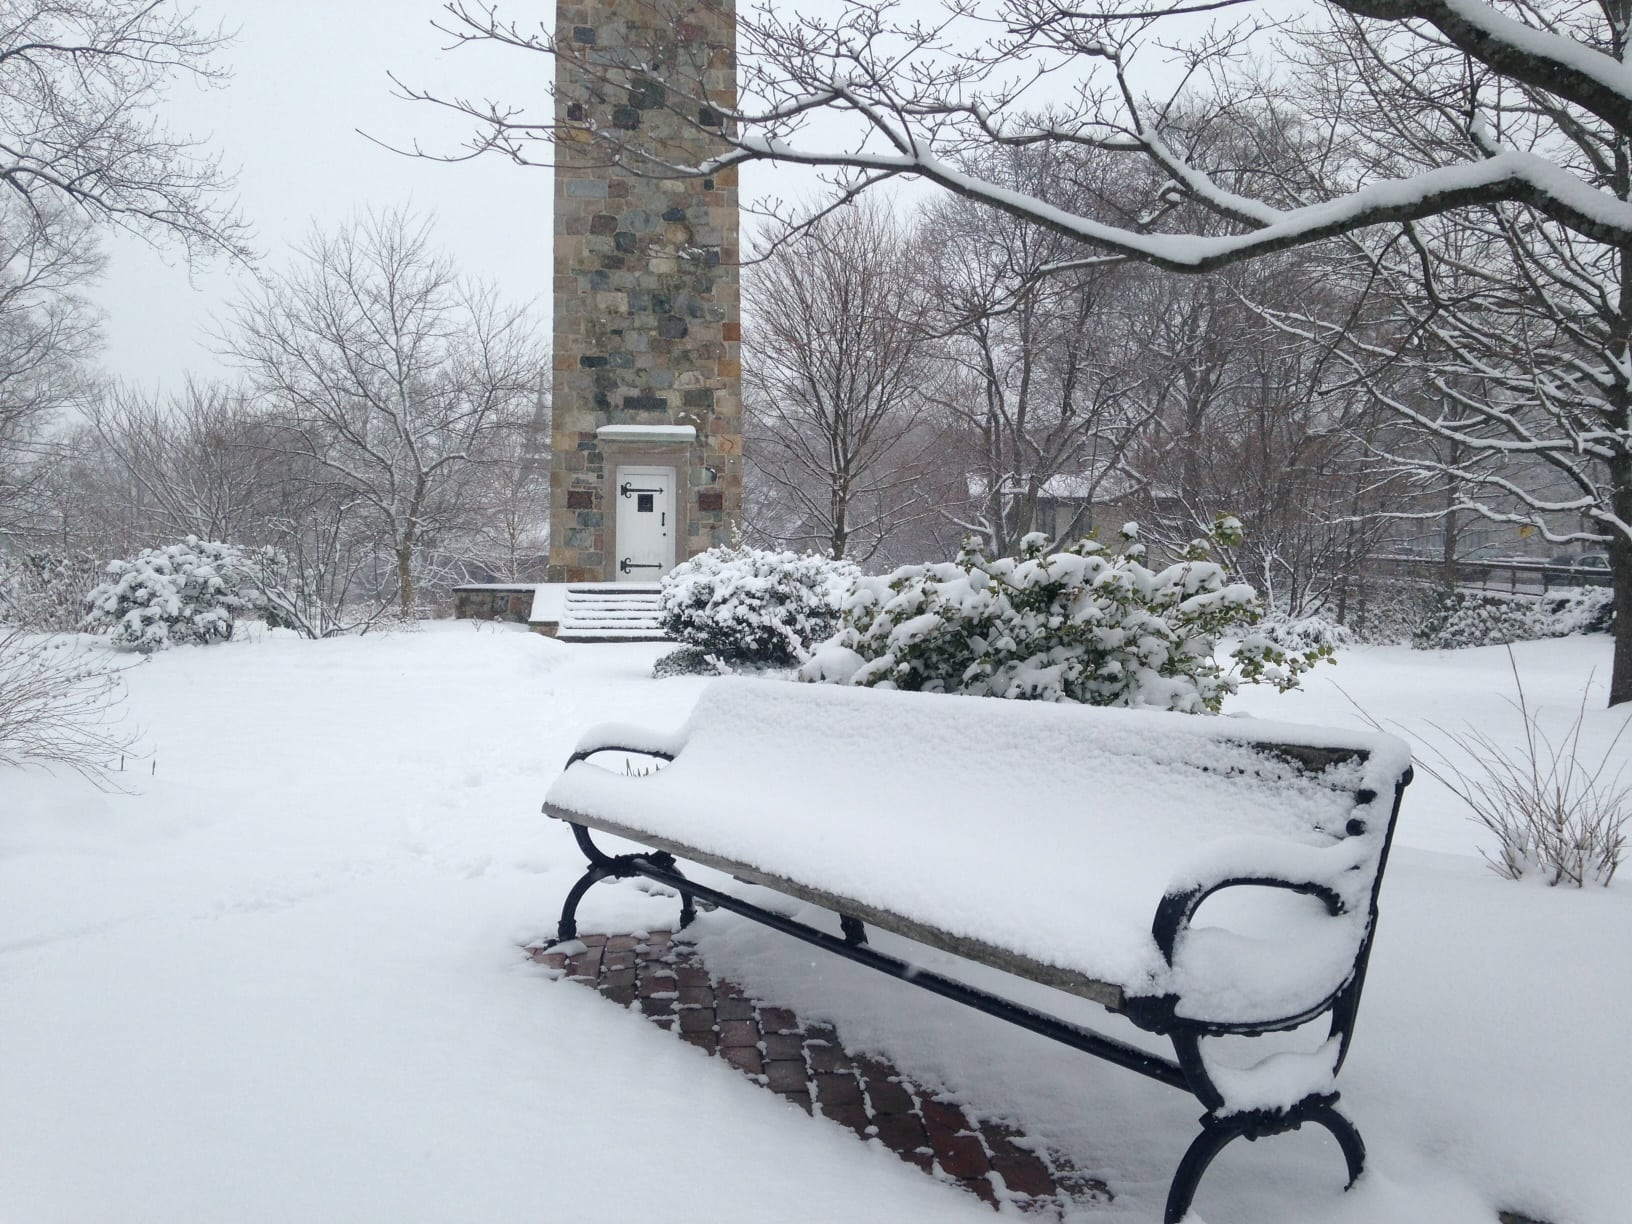 Wellesley Clock Tower, March 2016 storm